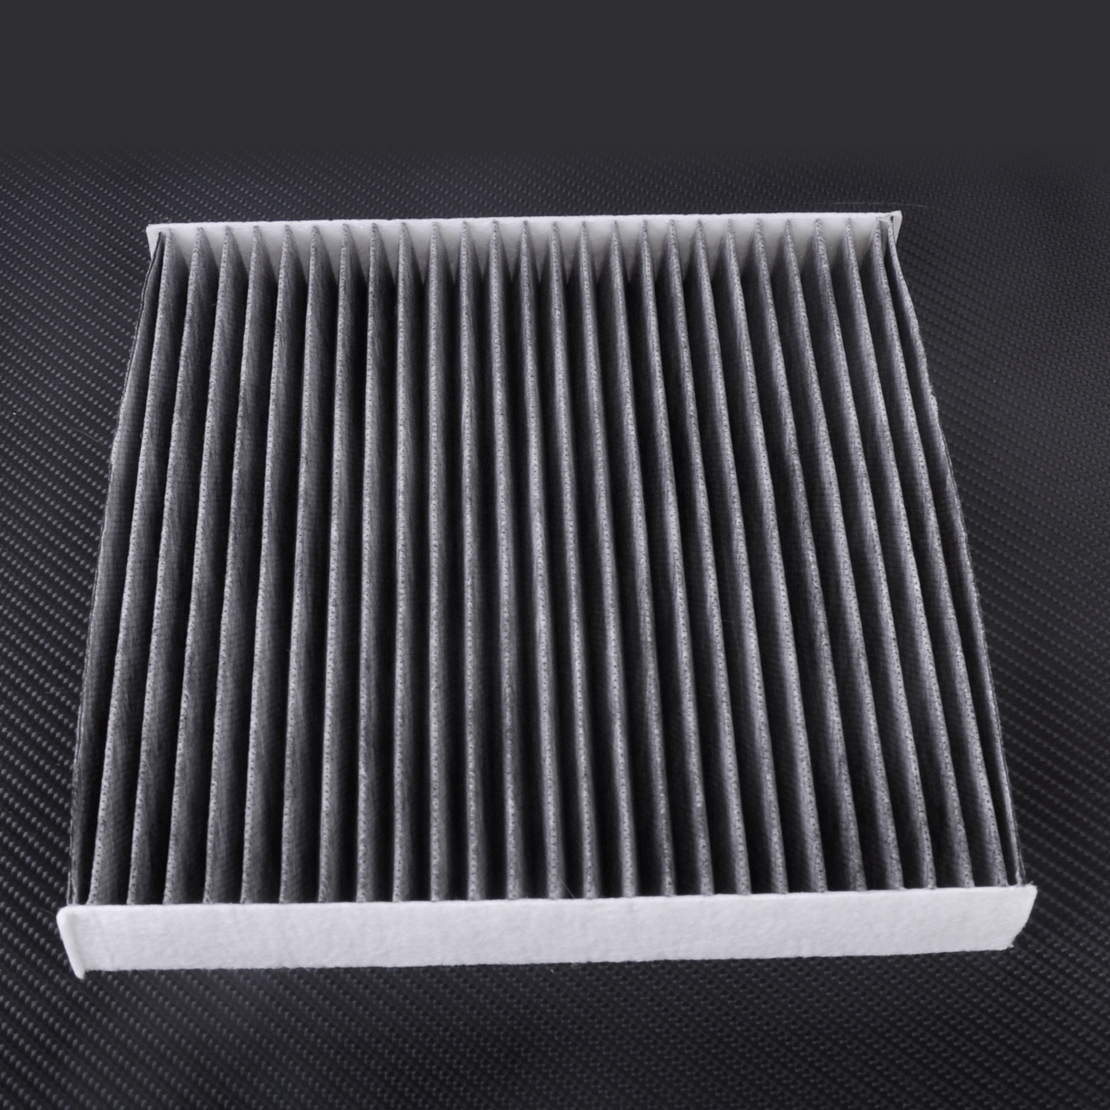 OEM SDAA Cabin Air Filter For Acura MDX RL TL TSX Honda - Acura mdx air filter